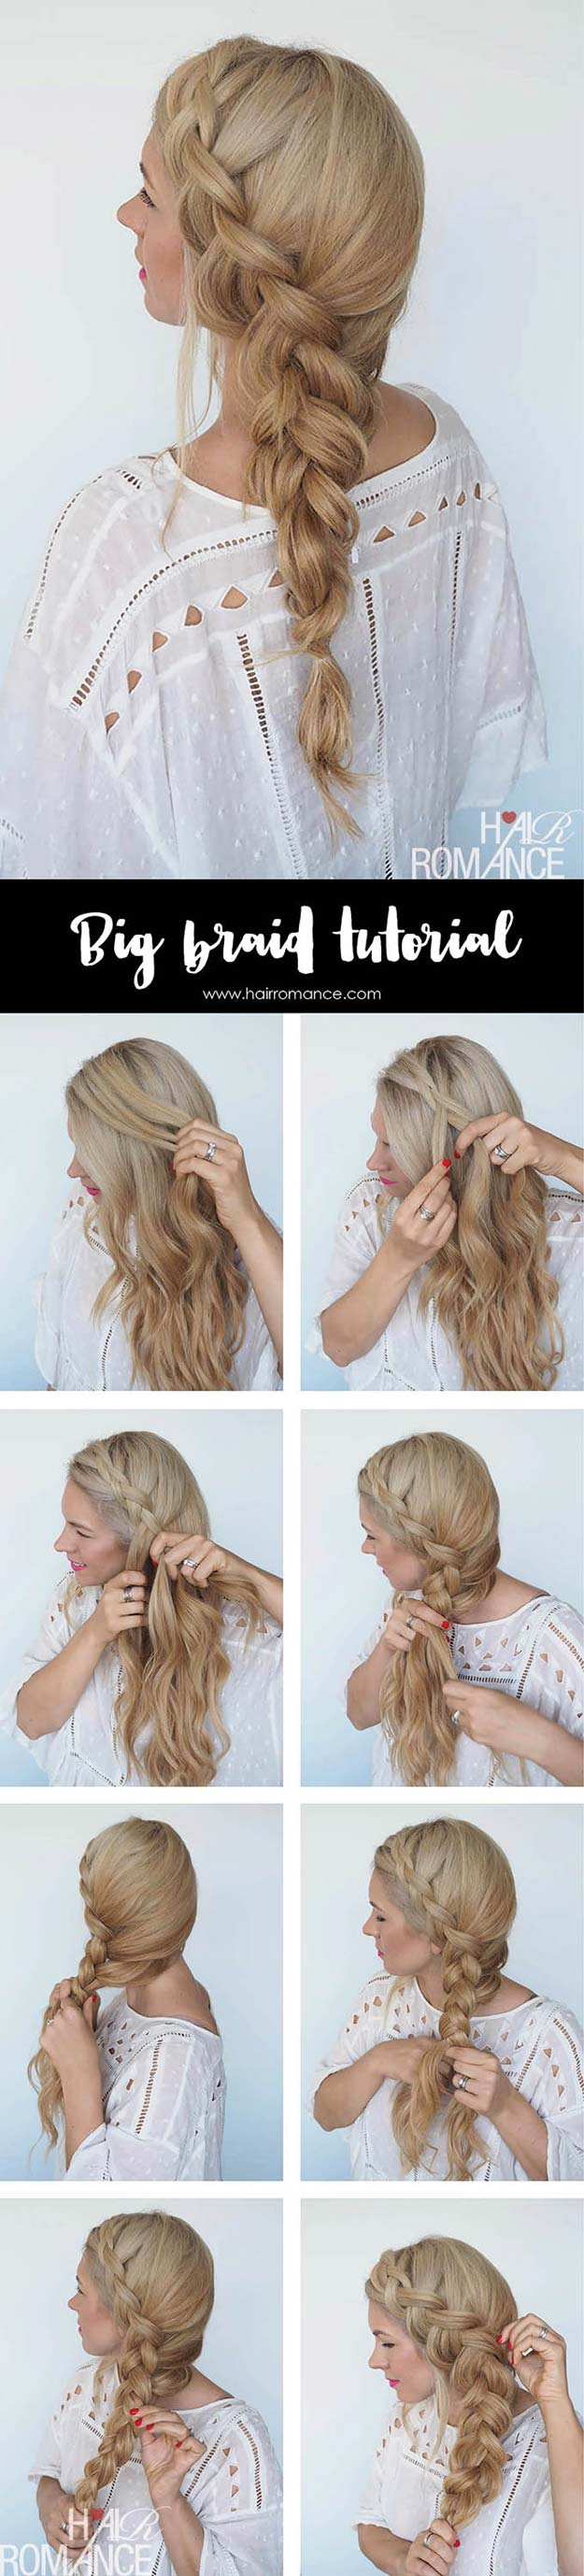 Best Hair Braiding Tutorials - Big Braid + Instant Mermaid Hair Tutorial - Easy Step by Step Tutorials for Braids - How To Braid Fishtail, French Braids, Flower Crown, Side Braids, Cornrows, Updos - Cool Braided Hairstyles for Girls, Teens and Women - School, Day and Evening, Boho, Casual and Formal Looks #hairstyles #braiding #braidingtutorials #diyhair